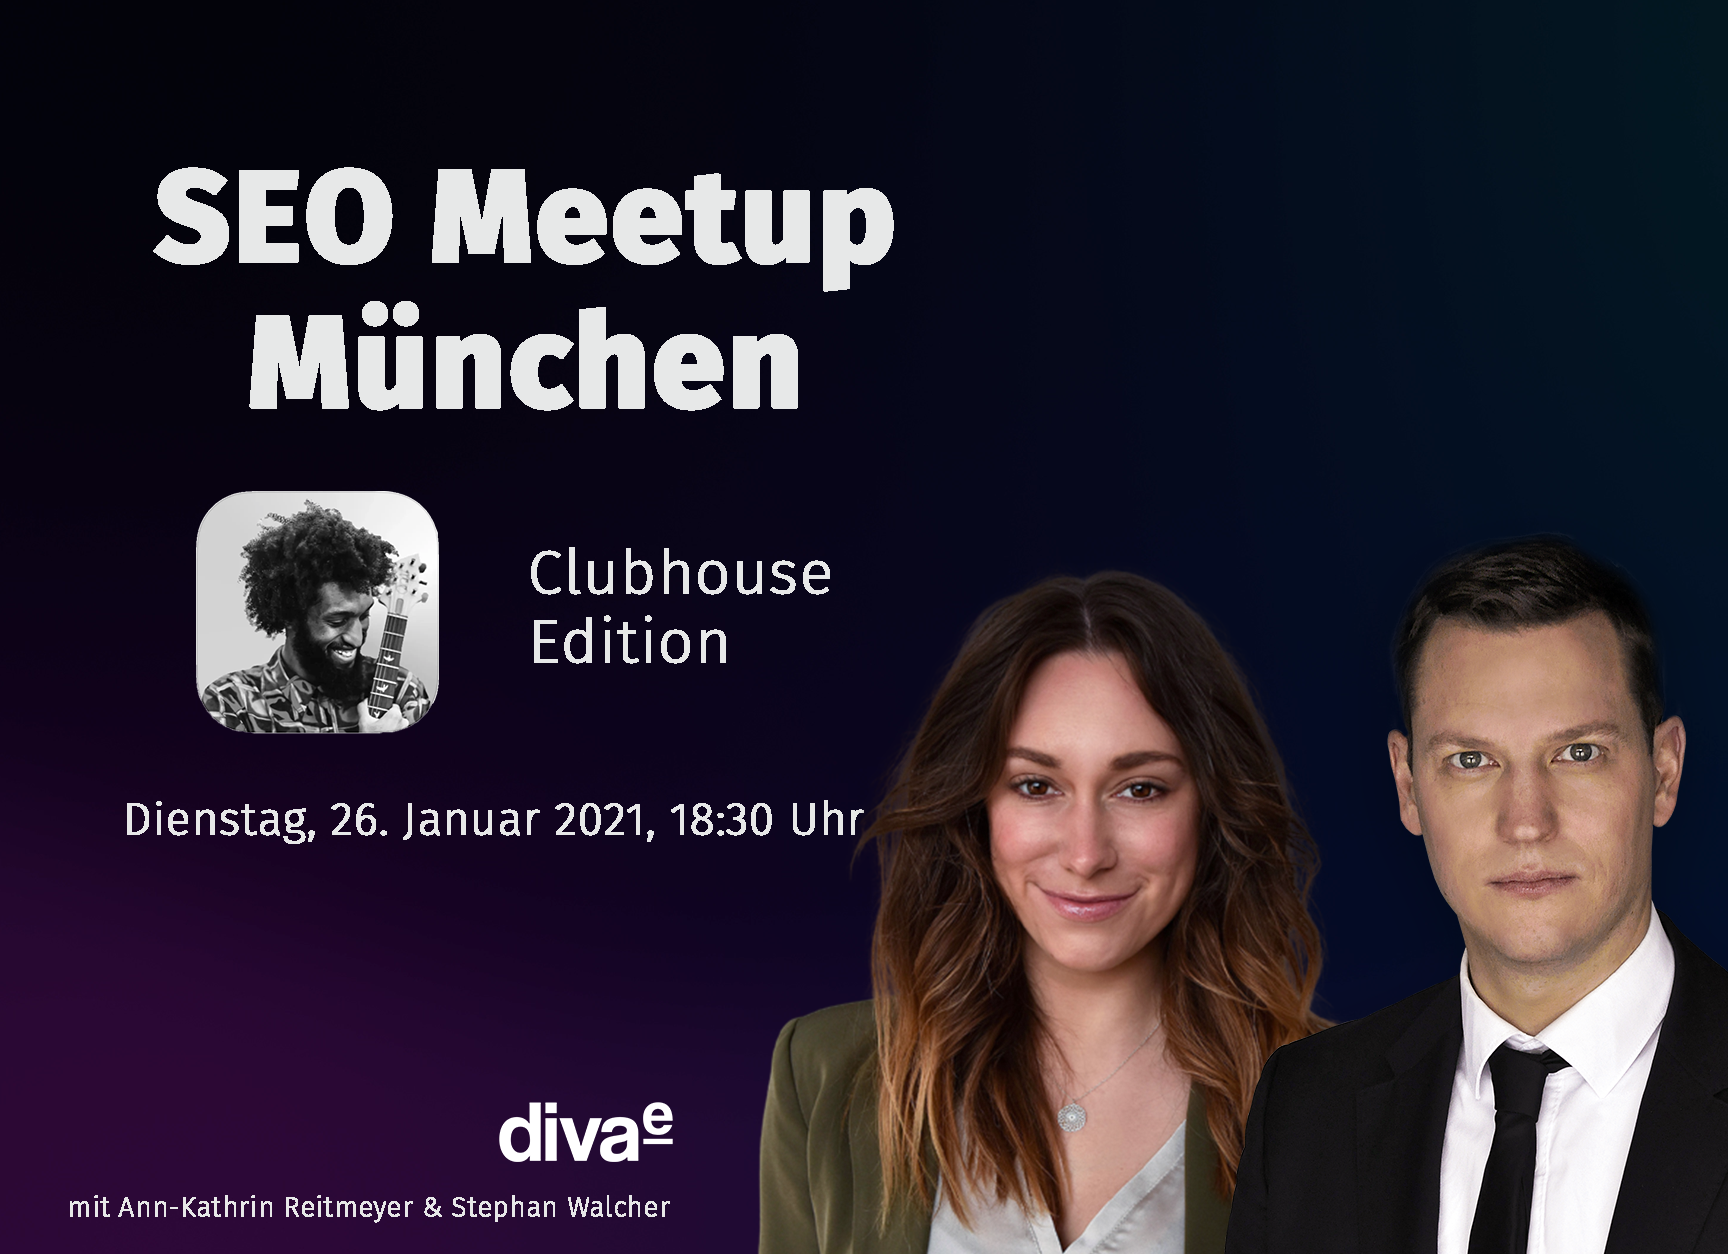 SEO Meetup München – Clubhouse Edition